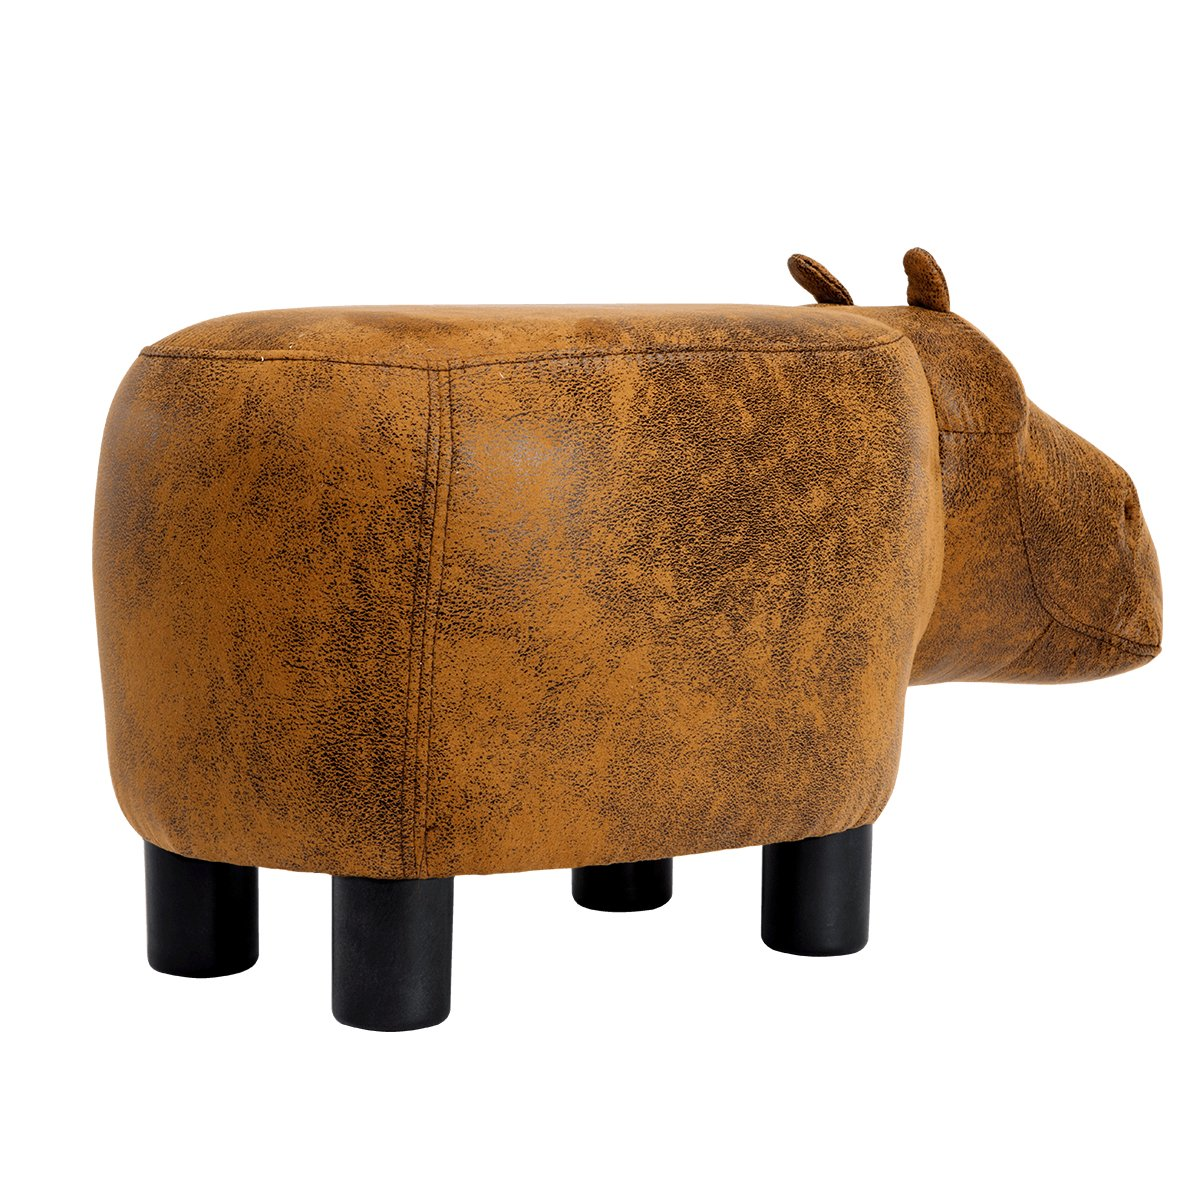 Guteen Upholstered Ride-on Toy Seat Ottoman Footrest Stool with Vivid Adorable Animal-Like Features(Brown Hippo) by GUTEEN (Image #7)